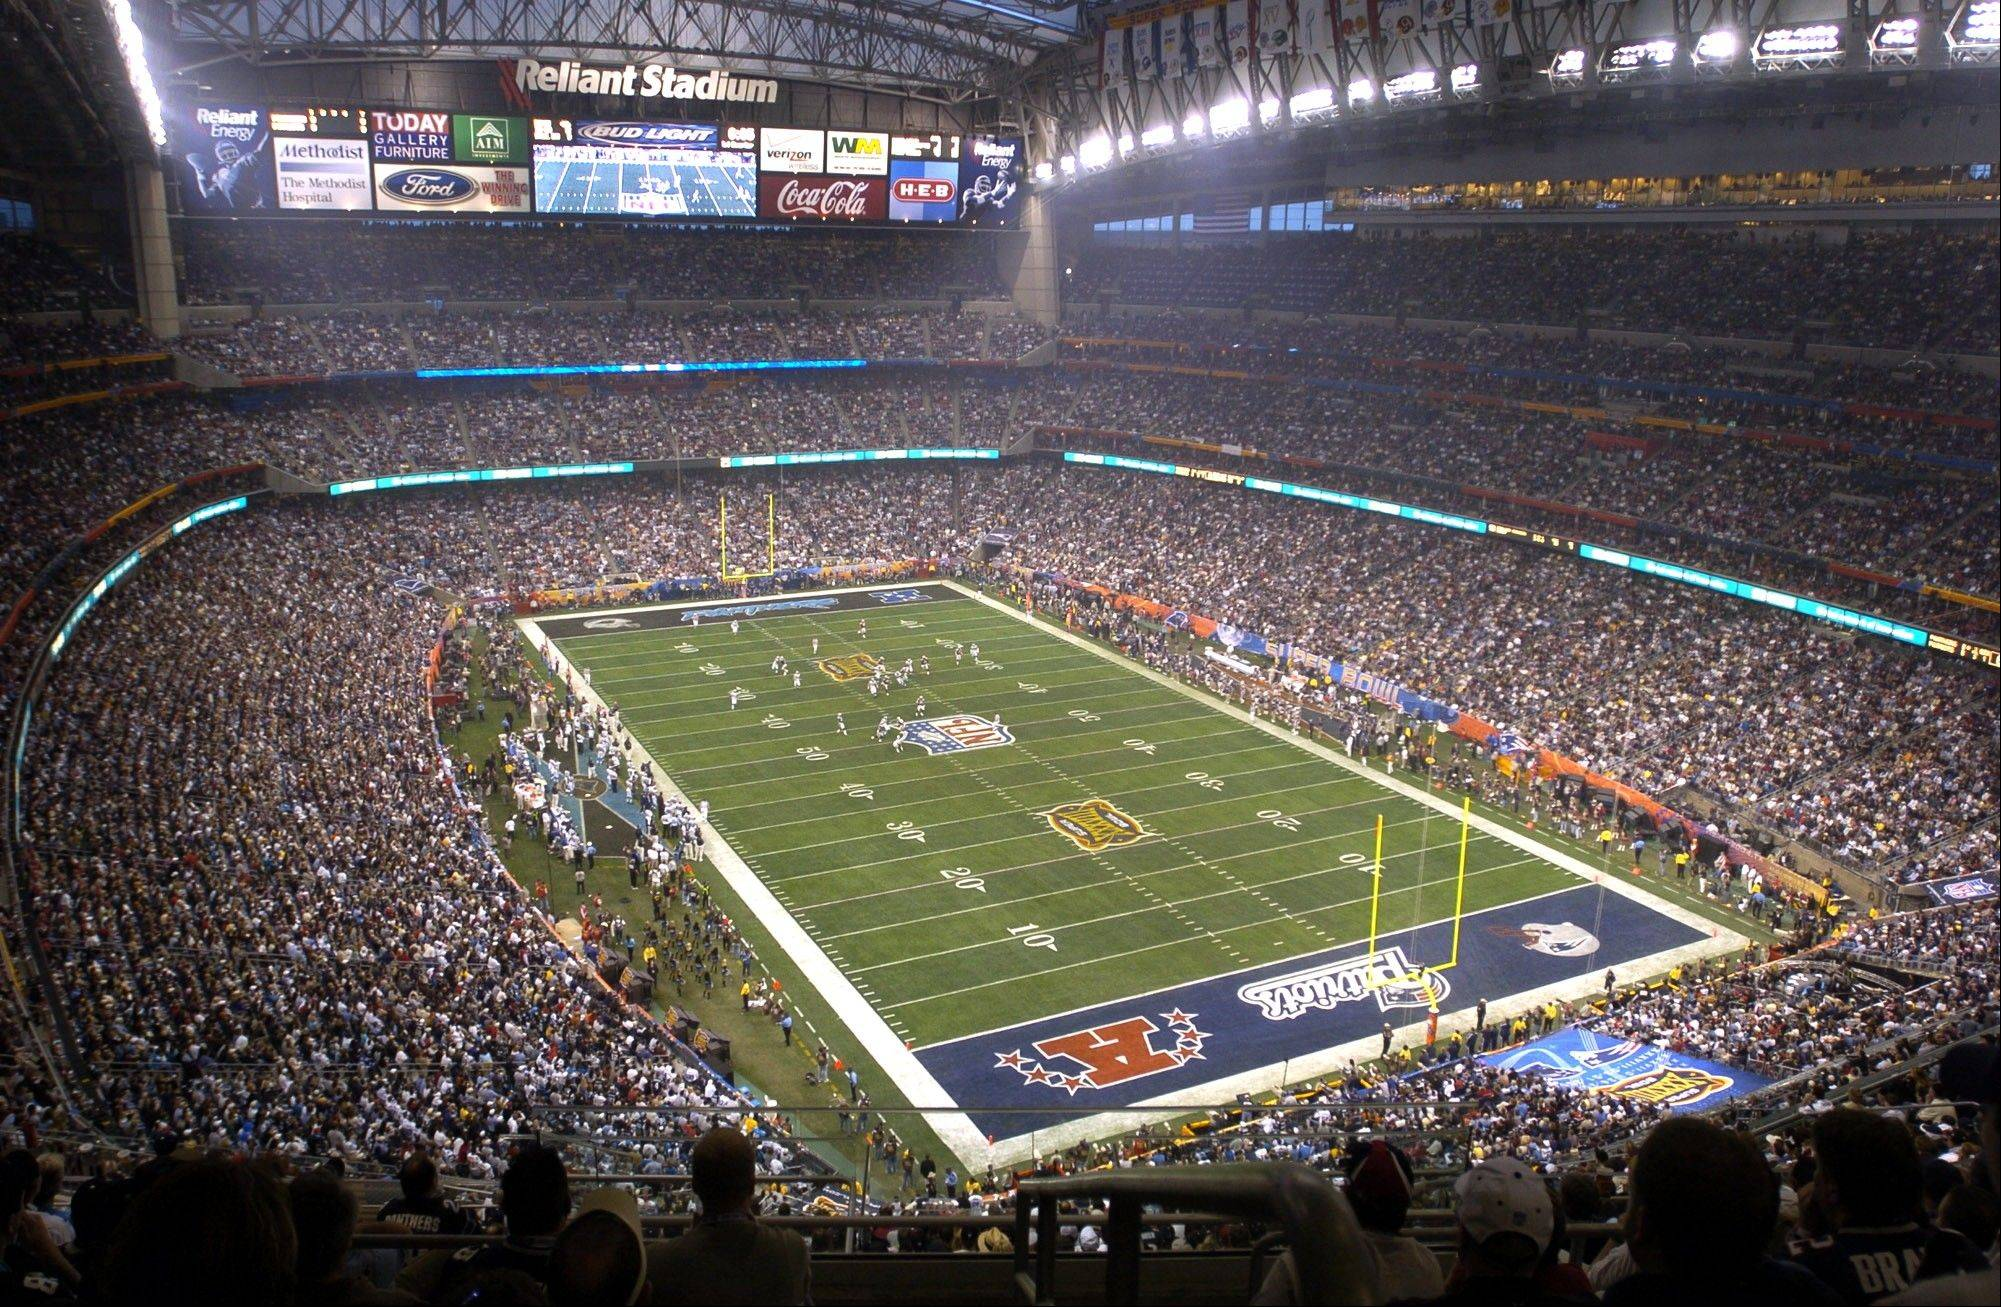 In this Feb. 1, 2004 file photo,�Houston's Reliant Stadium hosts a sellout crowd at Super Bowl XXXVIII between the Carolina Panthers and the New England Patriots in Houston. NFL owners will vote on the sites of the 50th and 51st Super Bowls on Tuesday, May 21, 2013 at their spring meetings. The San Francisco area, where a new stadium is being built in Santa Clara, and South Florida are competing for the the 50th edition, to be held in February 2016.